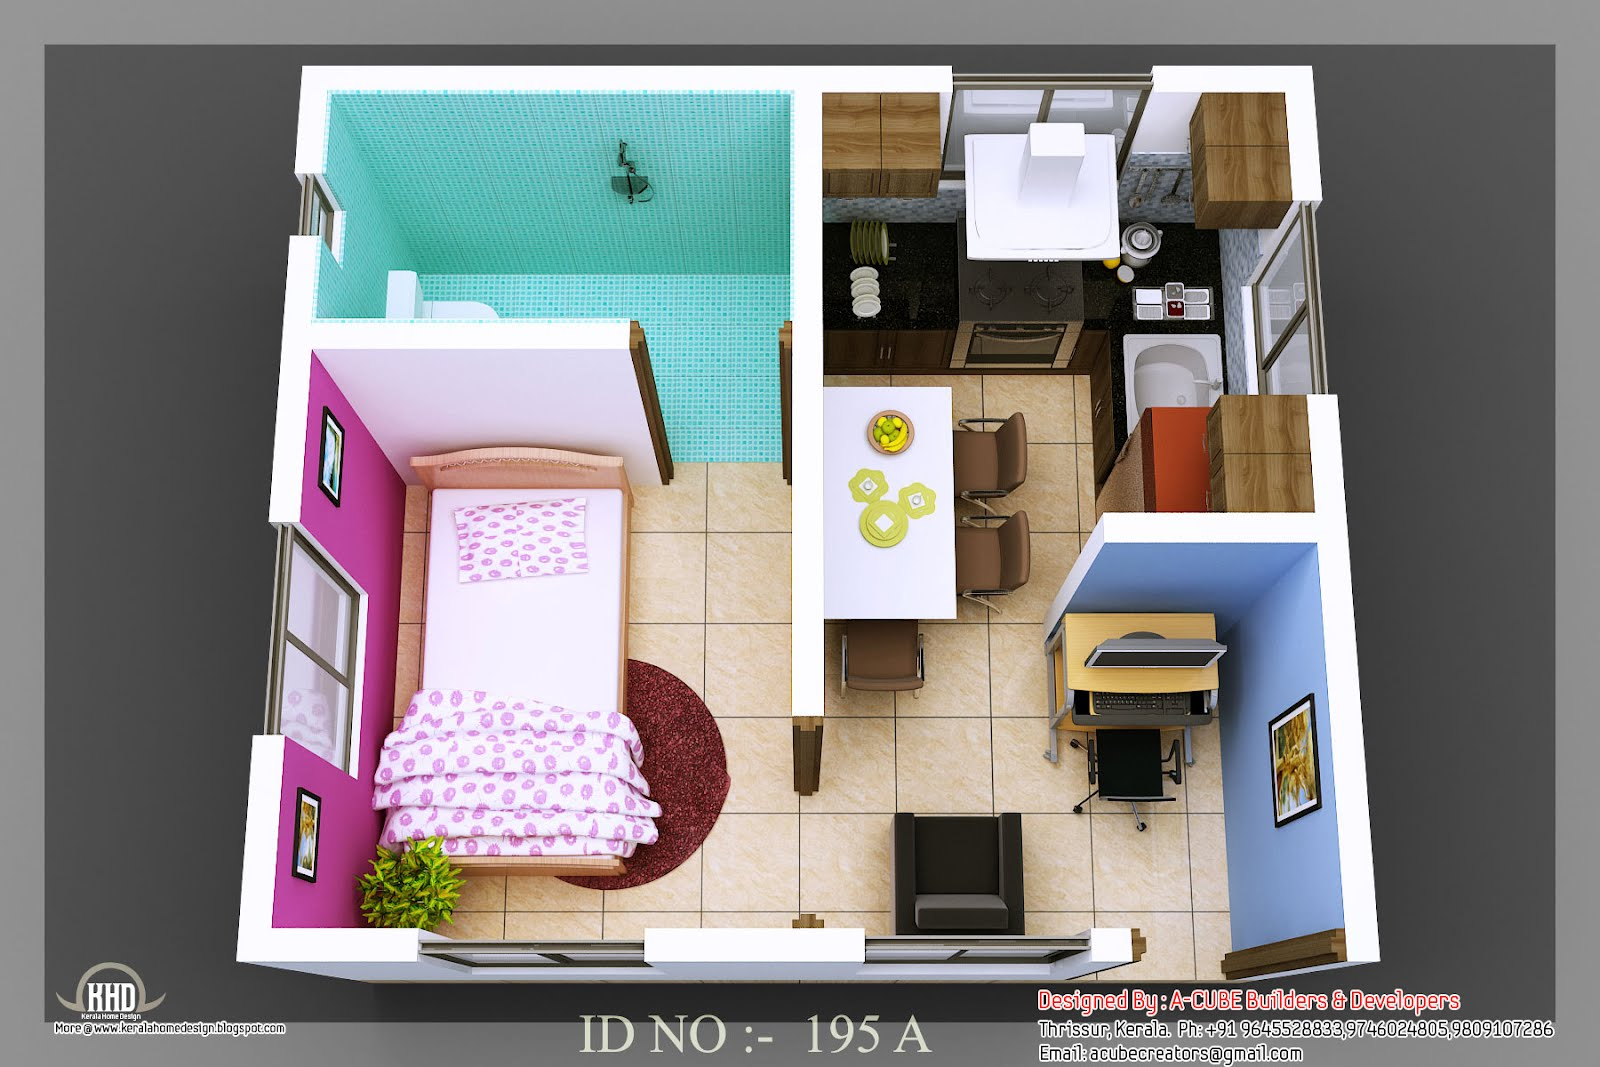 3d isometric views of small house plans kerala home design and floor plans 3d home design online